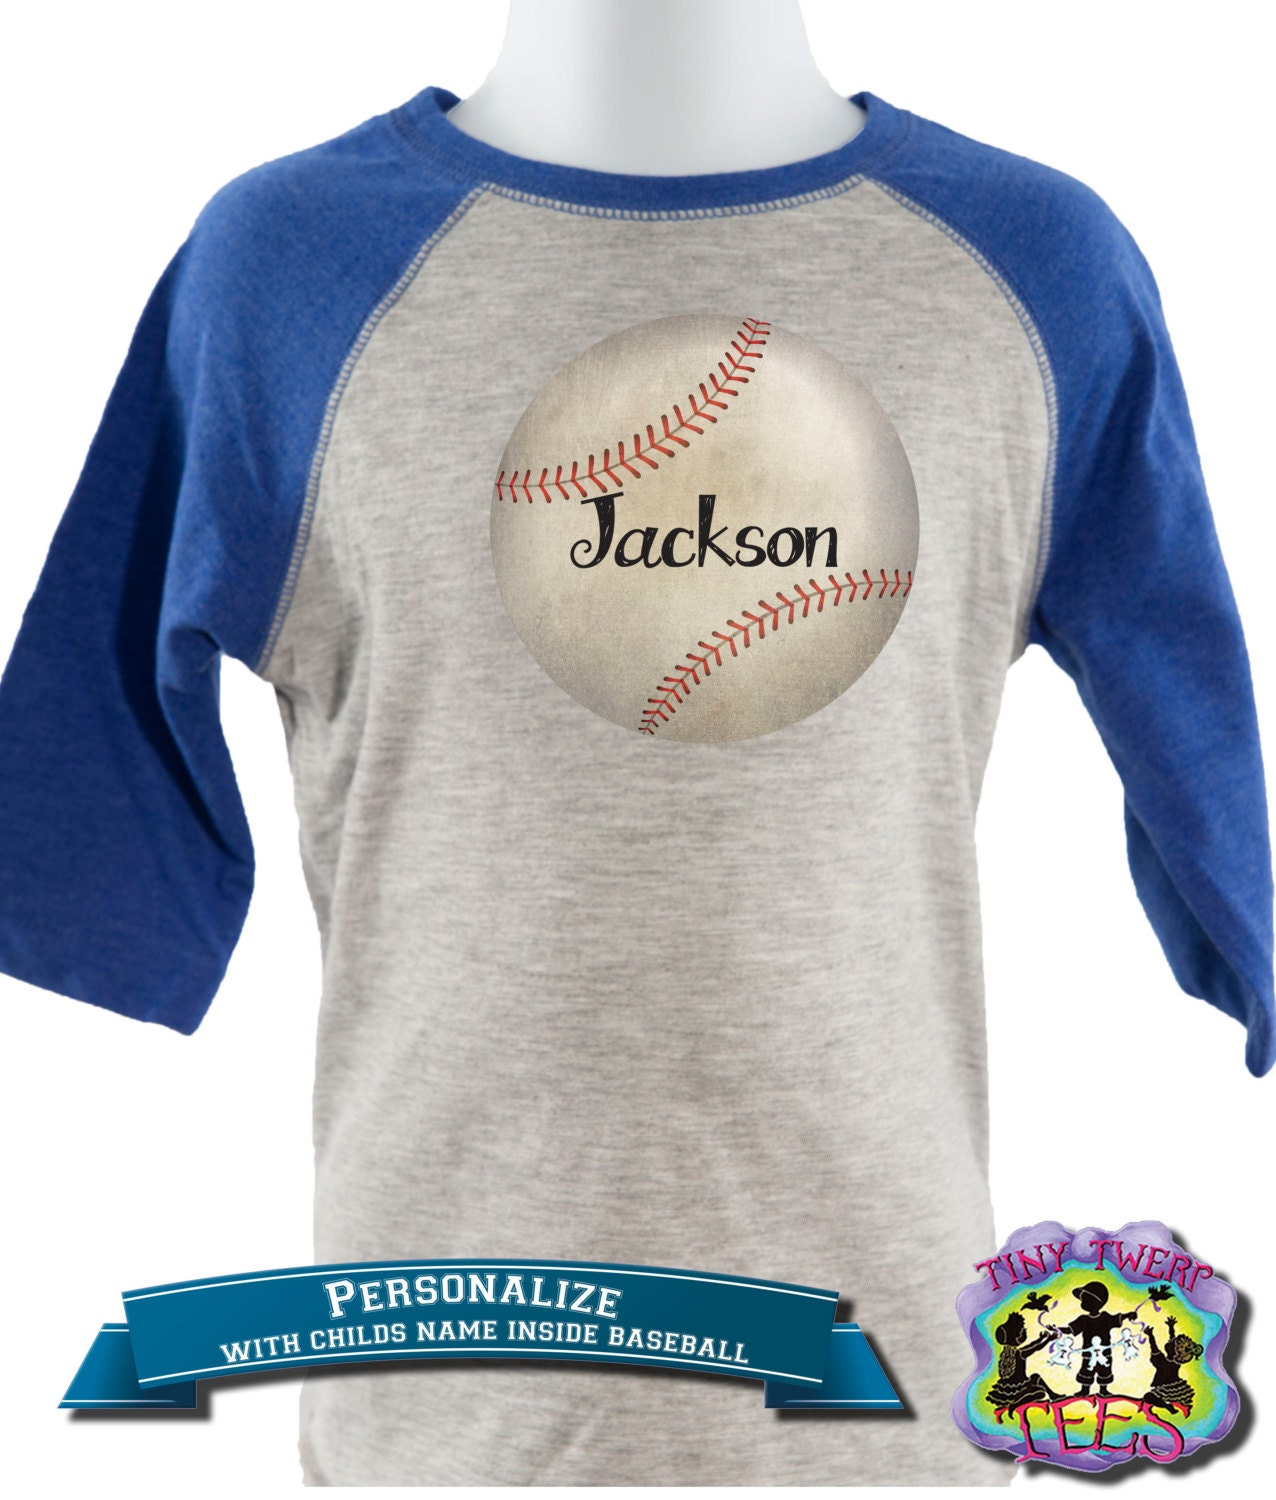 Personalized raglan baseball tee boys raglan tee by for Custom raglan baseball shirt